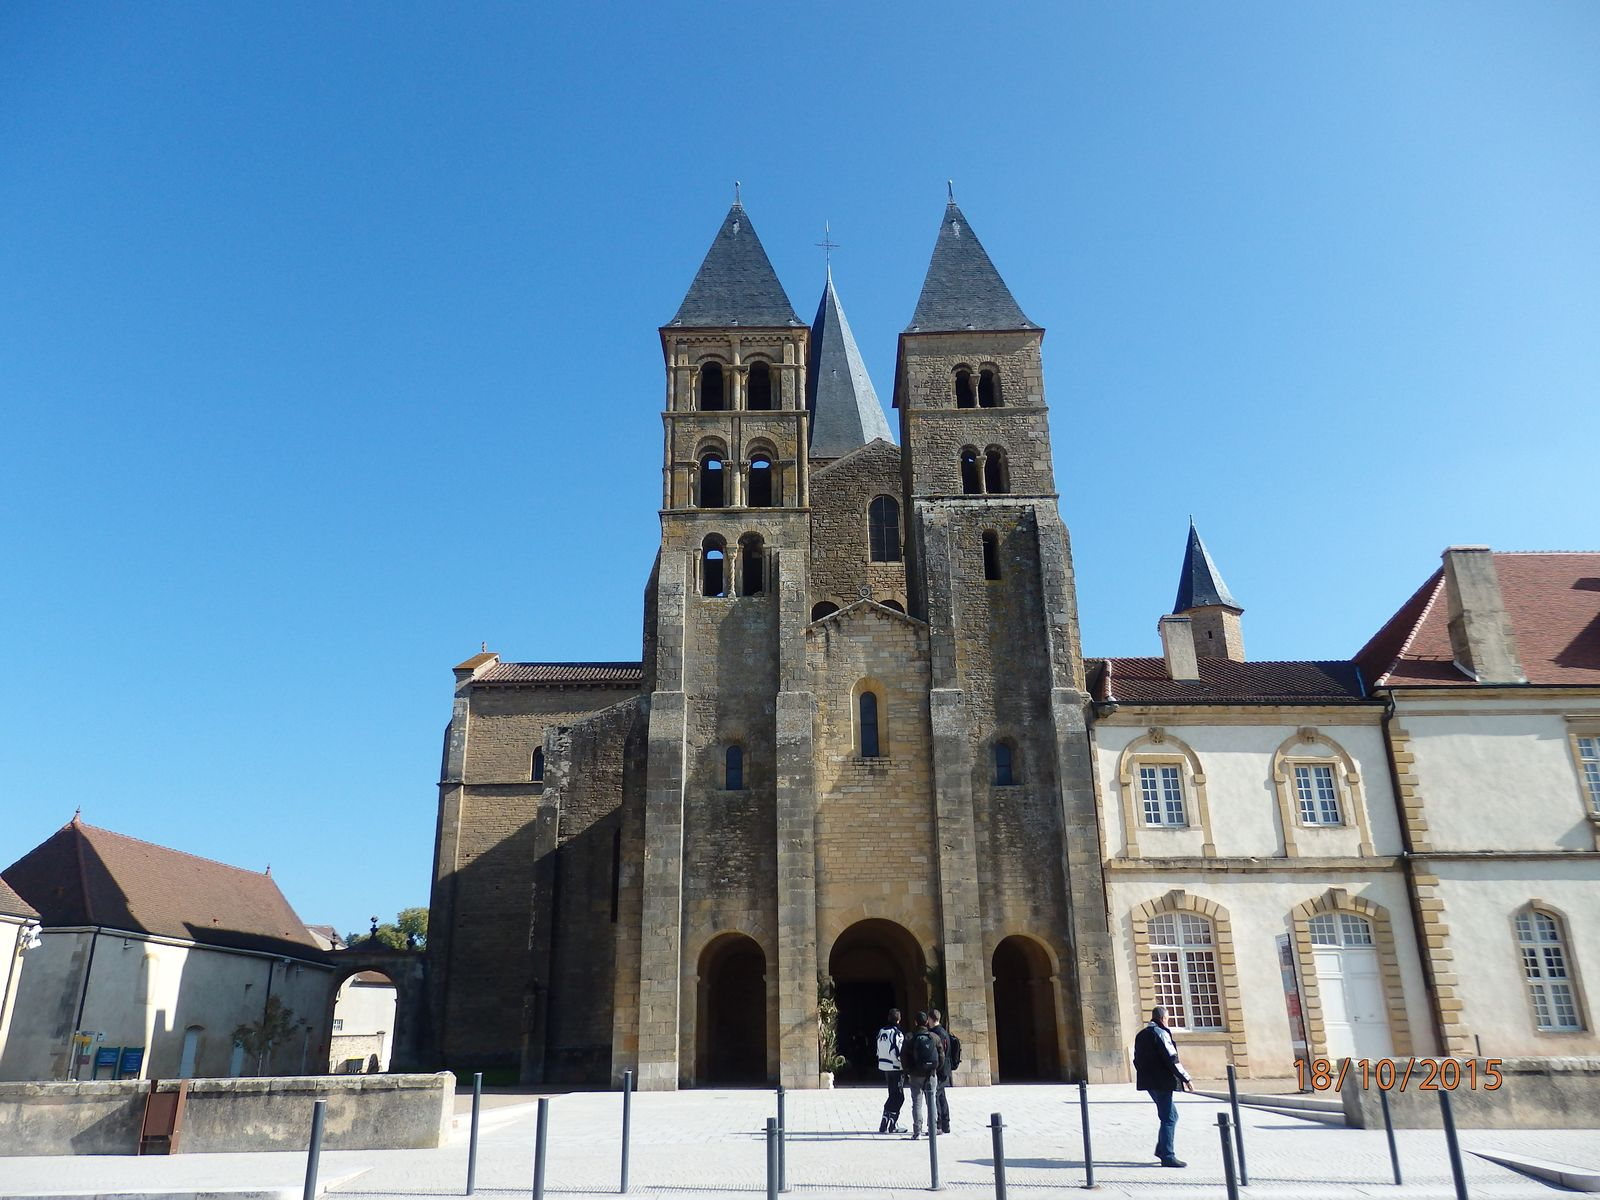 La Bourgogne, Paray le Monial